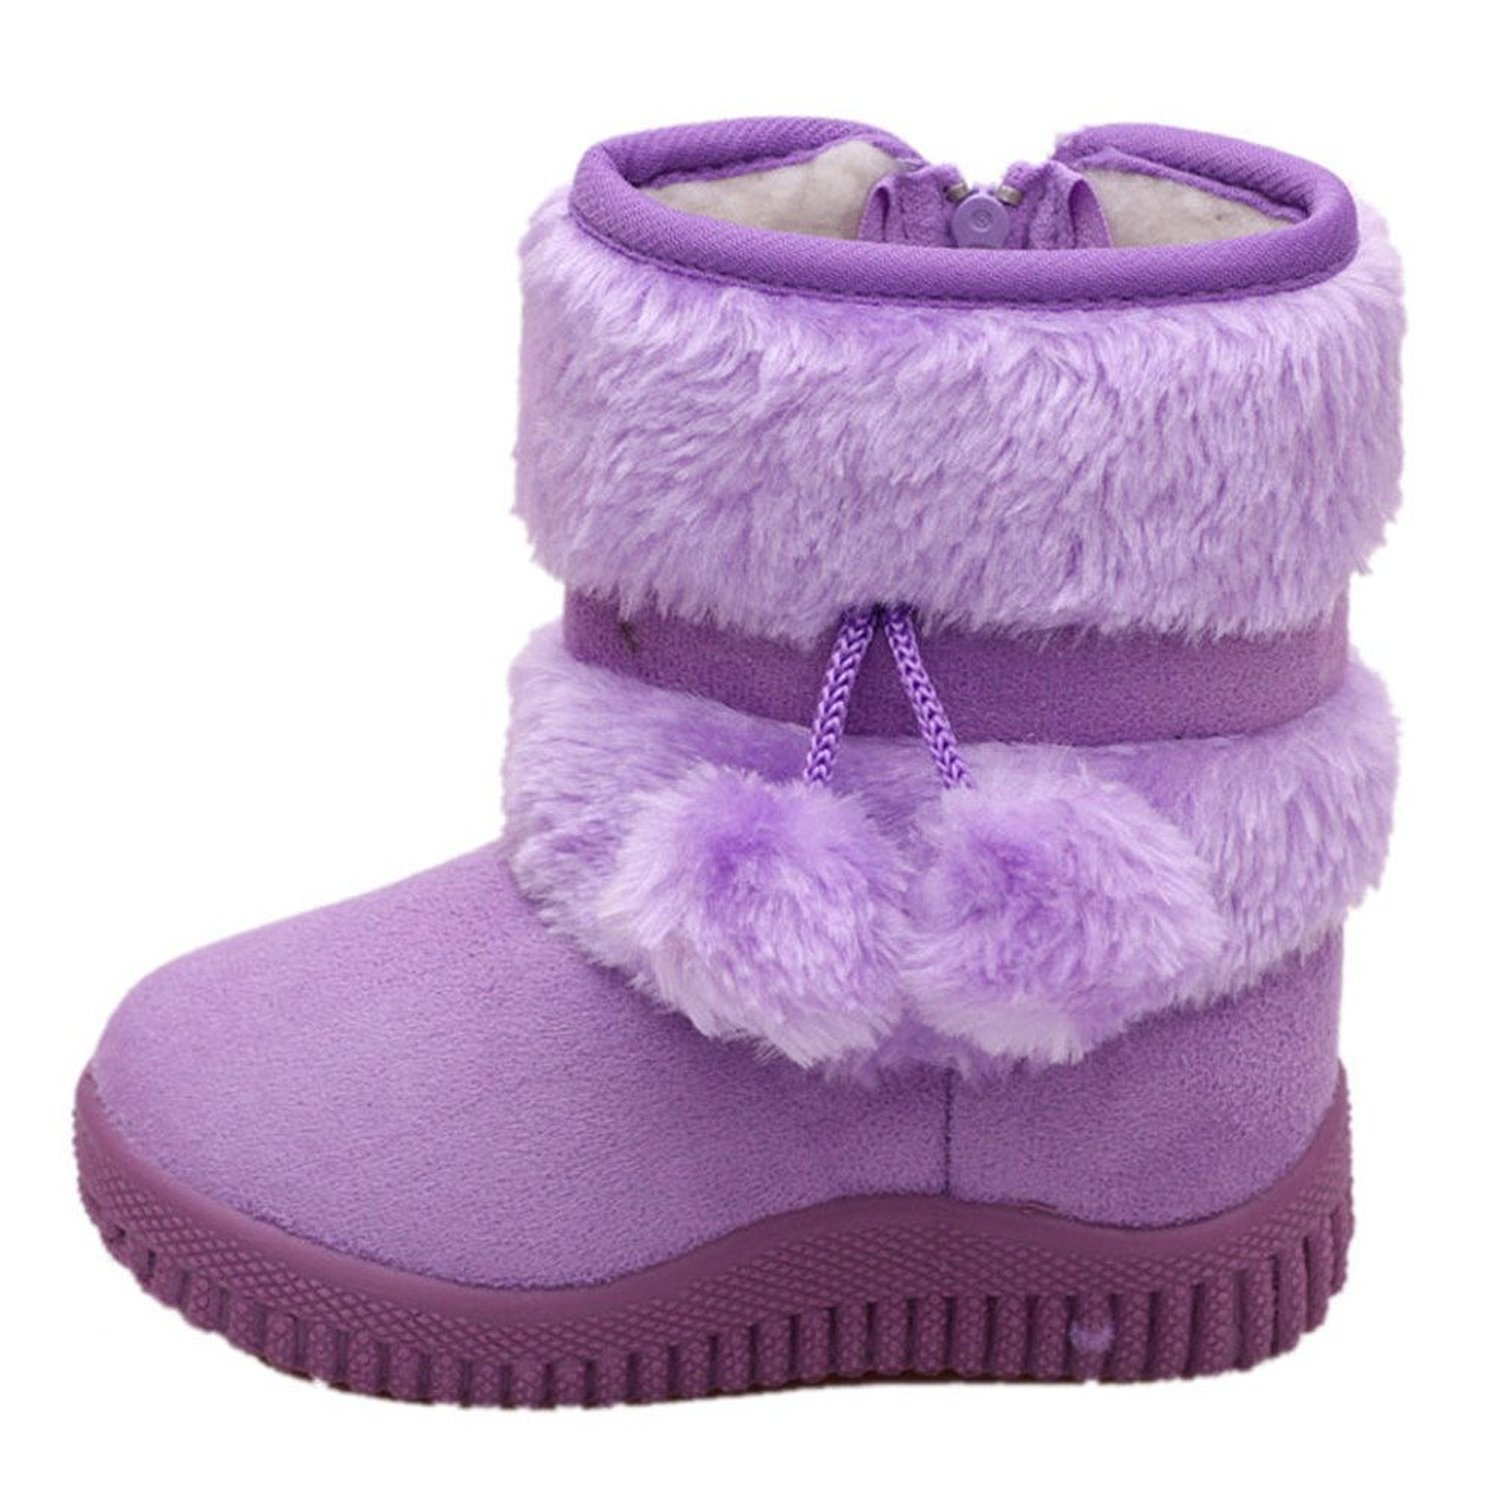 Toddler Baby Boy's Girl's Snow Boot Flat Pom Pom Winter Warm Shoes Ankle Booties (1-7 Years Kids)